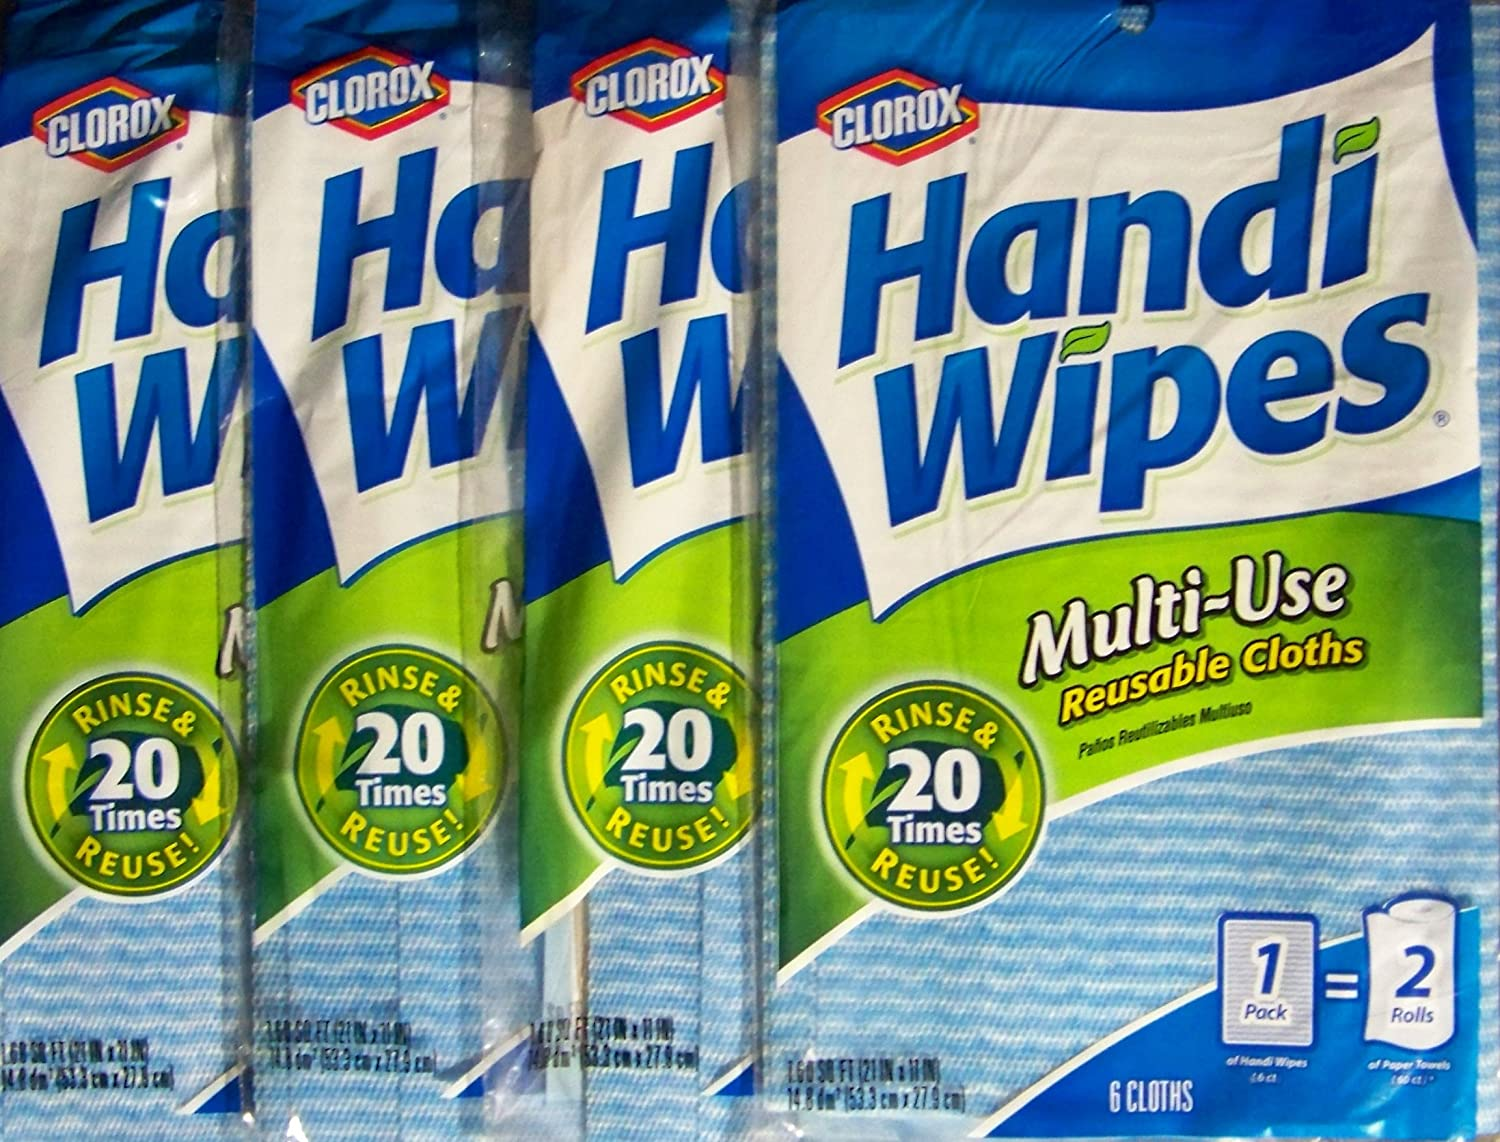 Clorox Handi Wipes Multi-Use Reusable Cloths Pack of 2 72 count